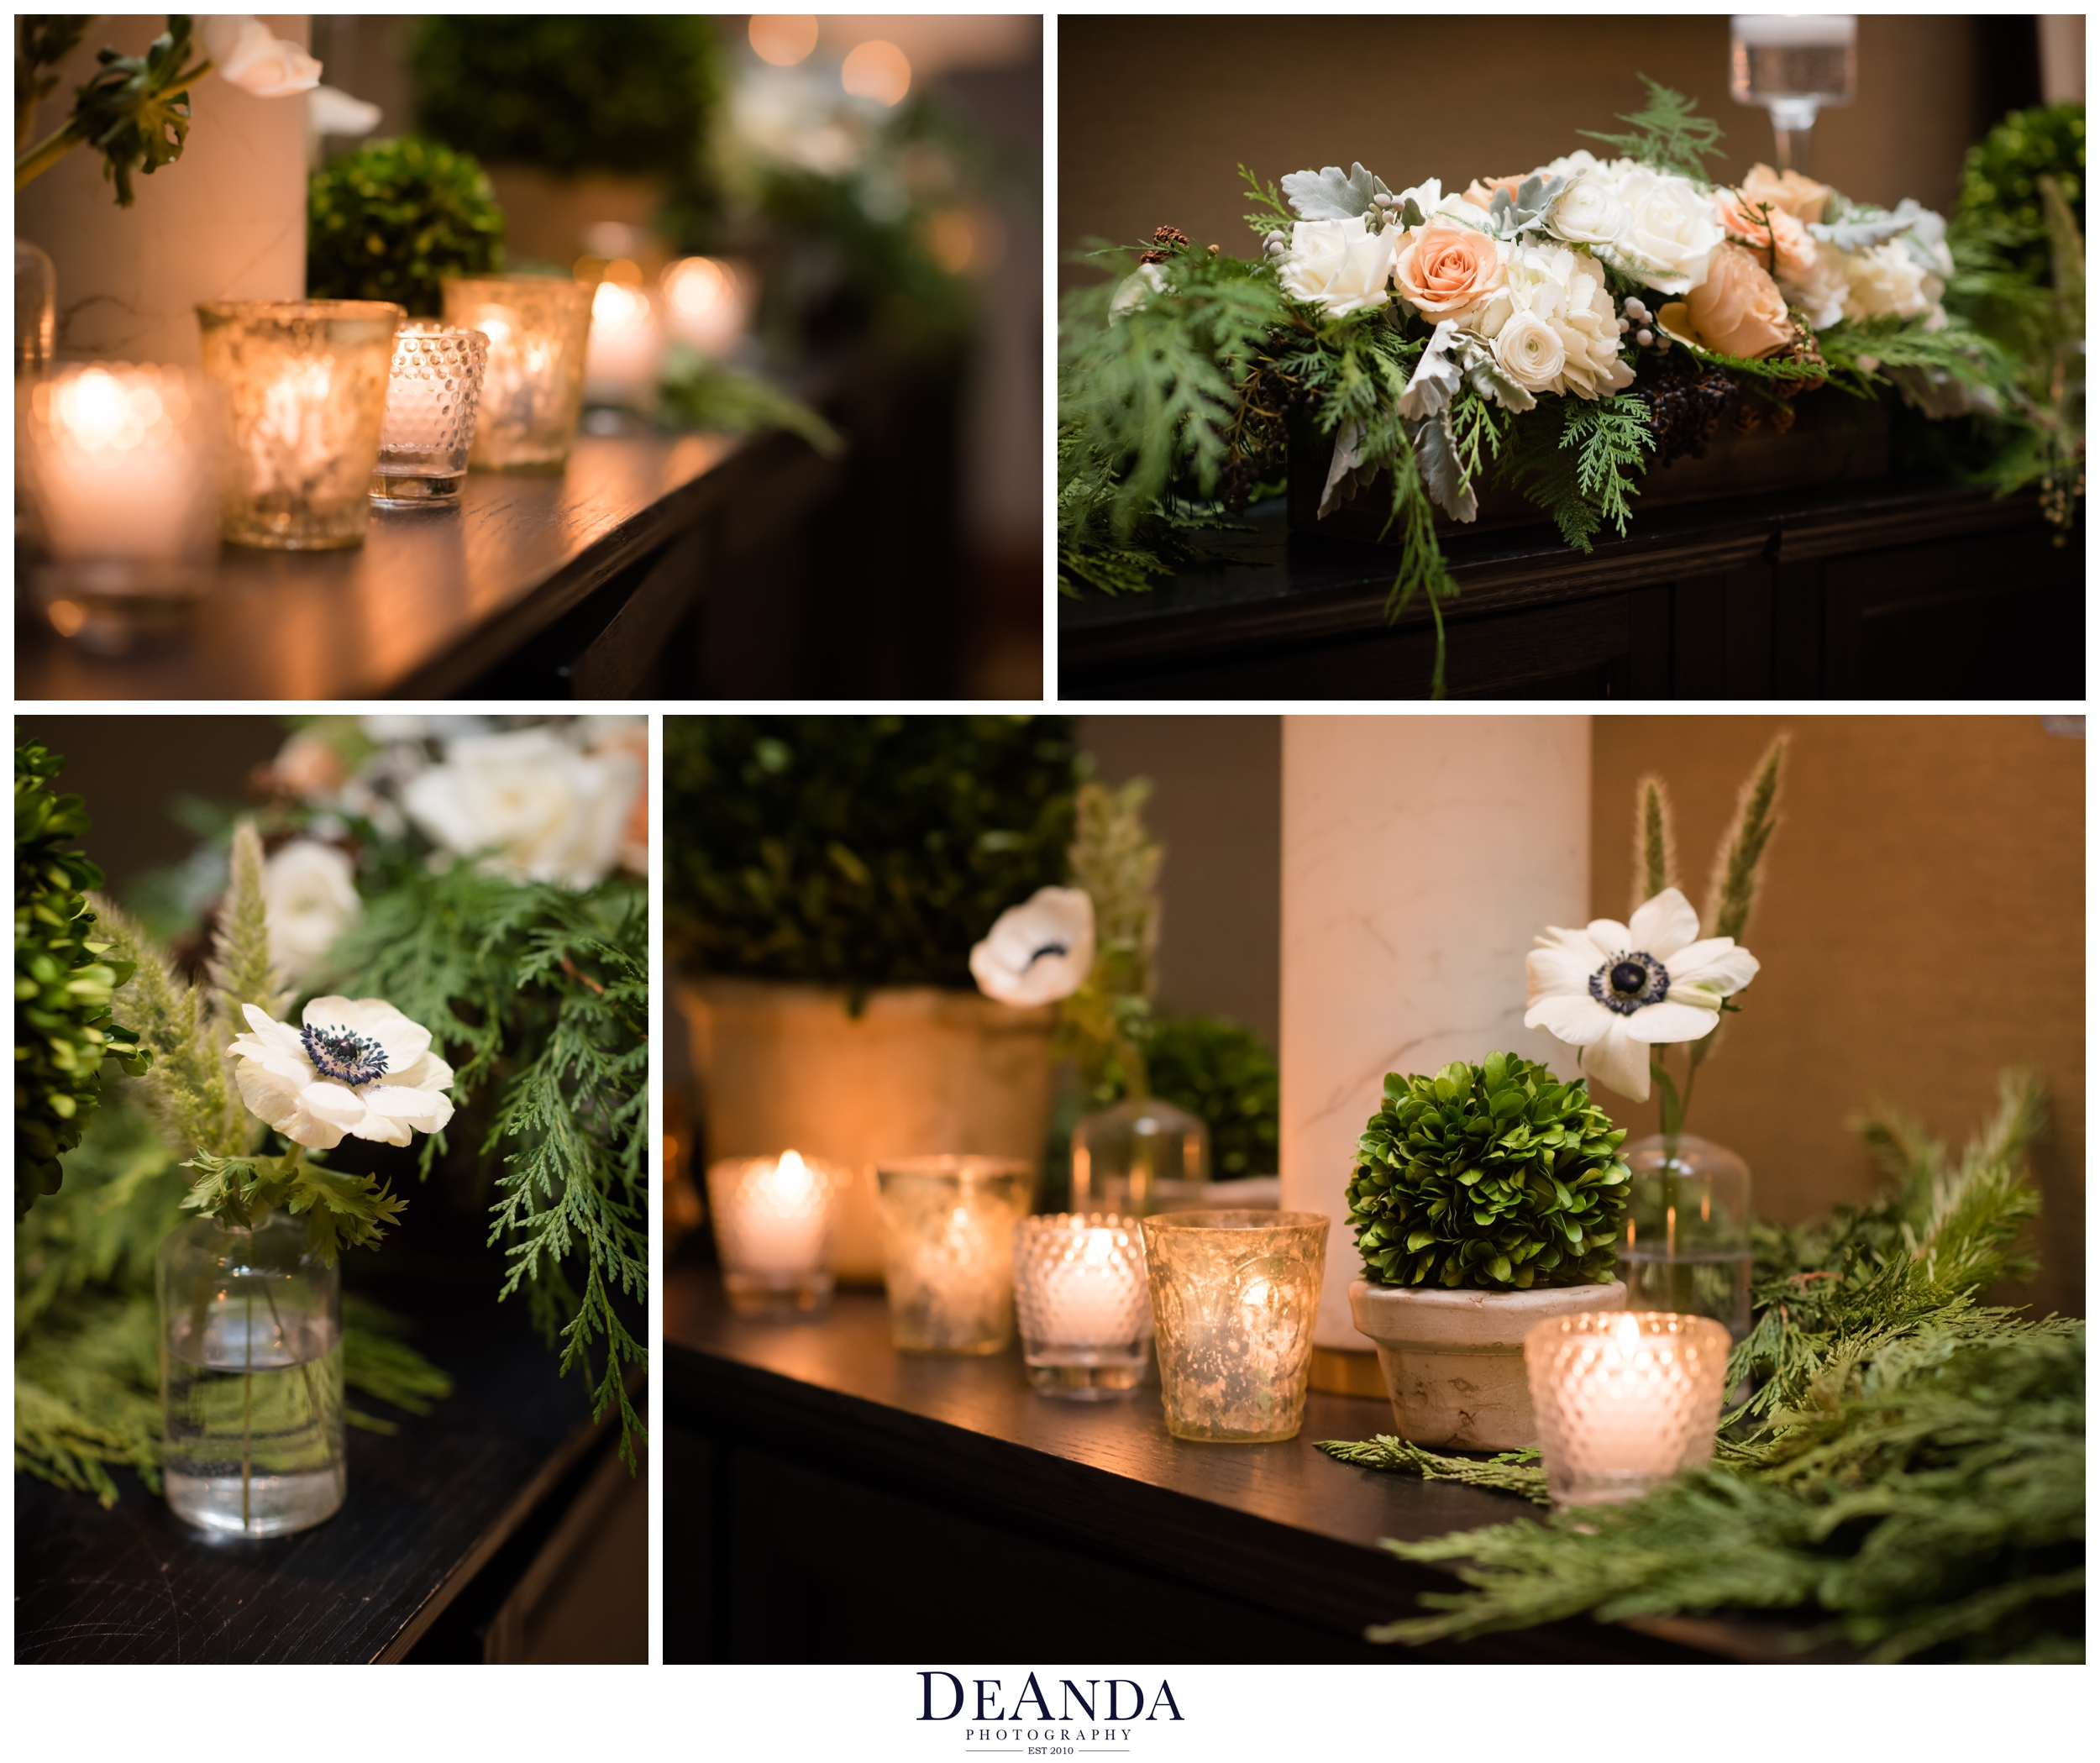 Small wedding at The Dining Room at Tree Studios Chicago